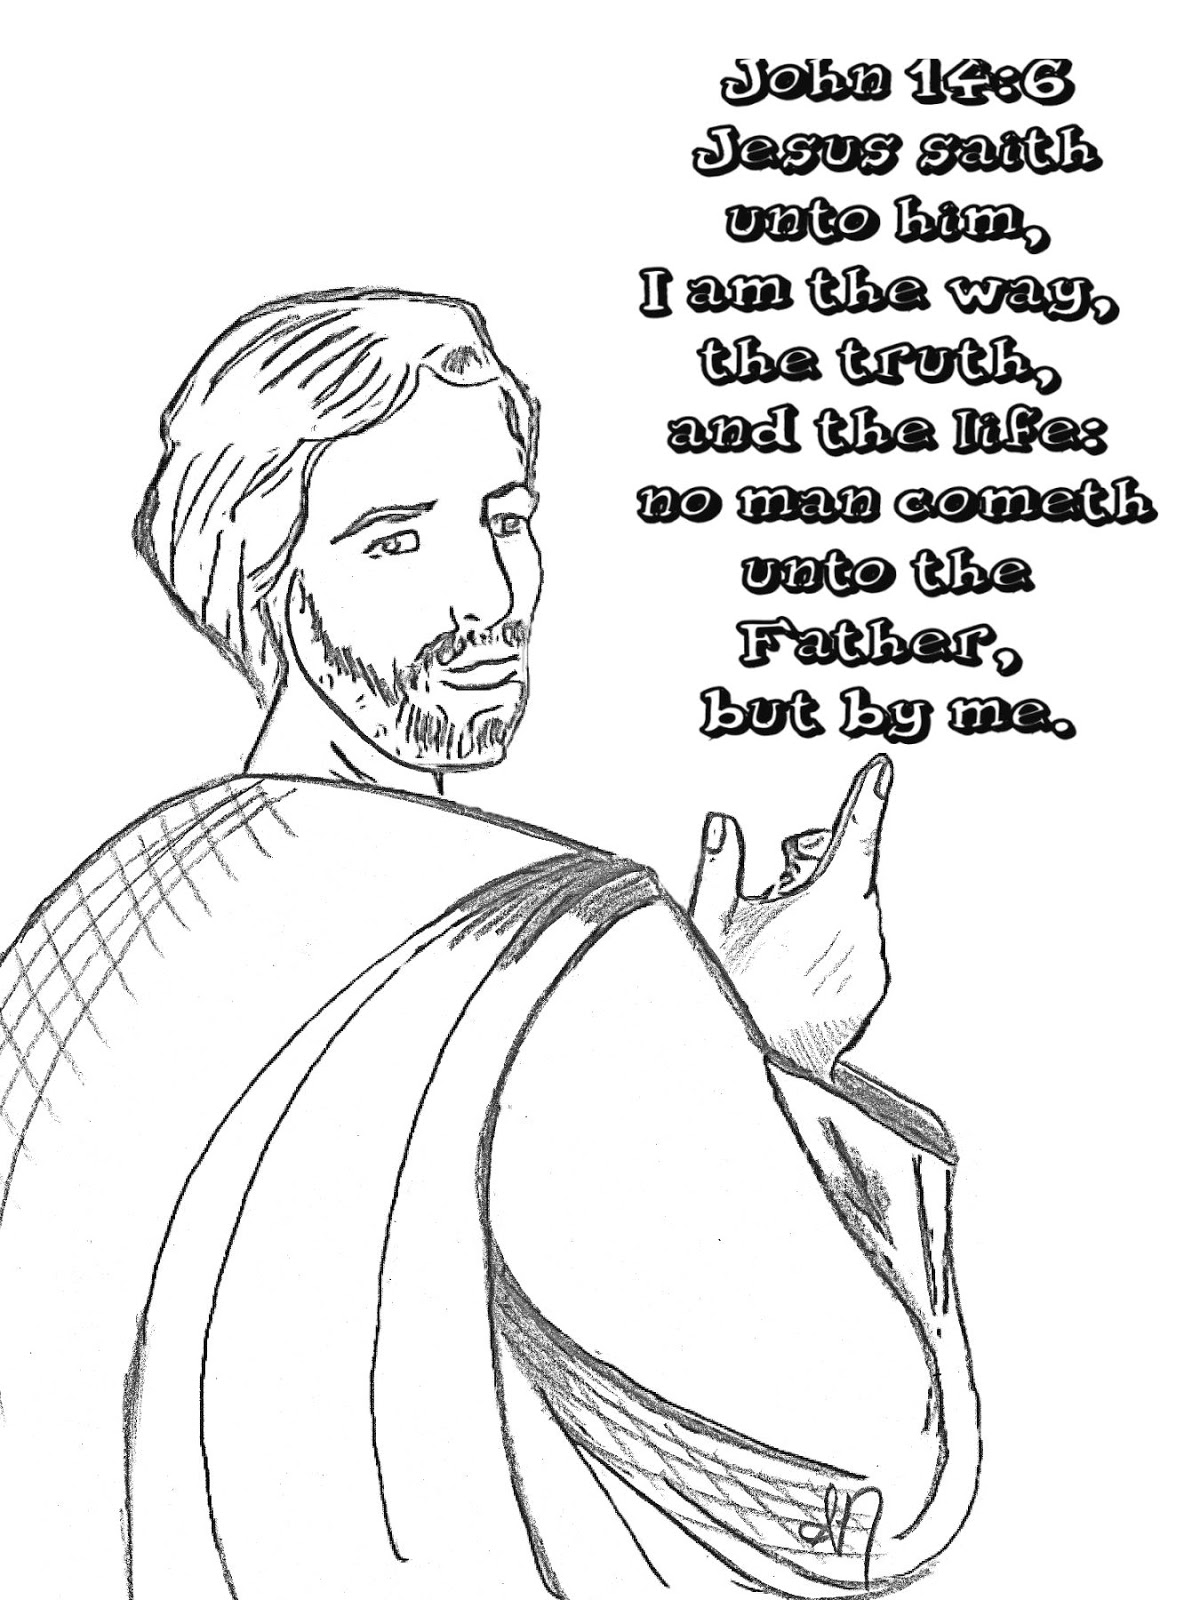 Children's Gems In My Treasure Box: John 14:6 Coloring Page